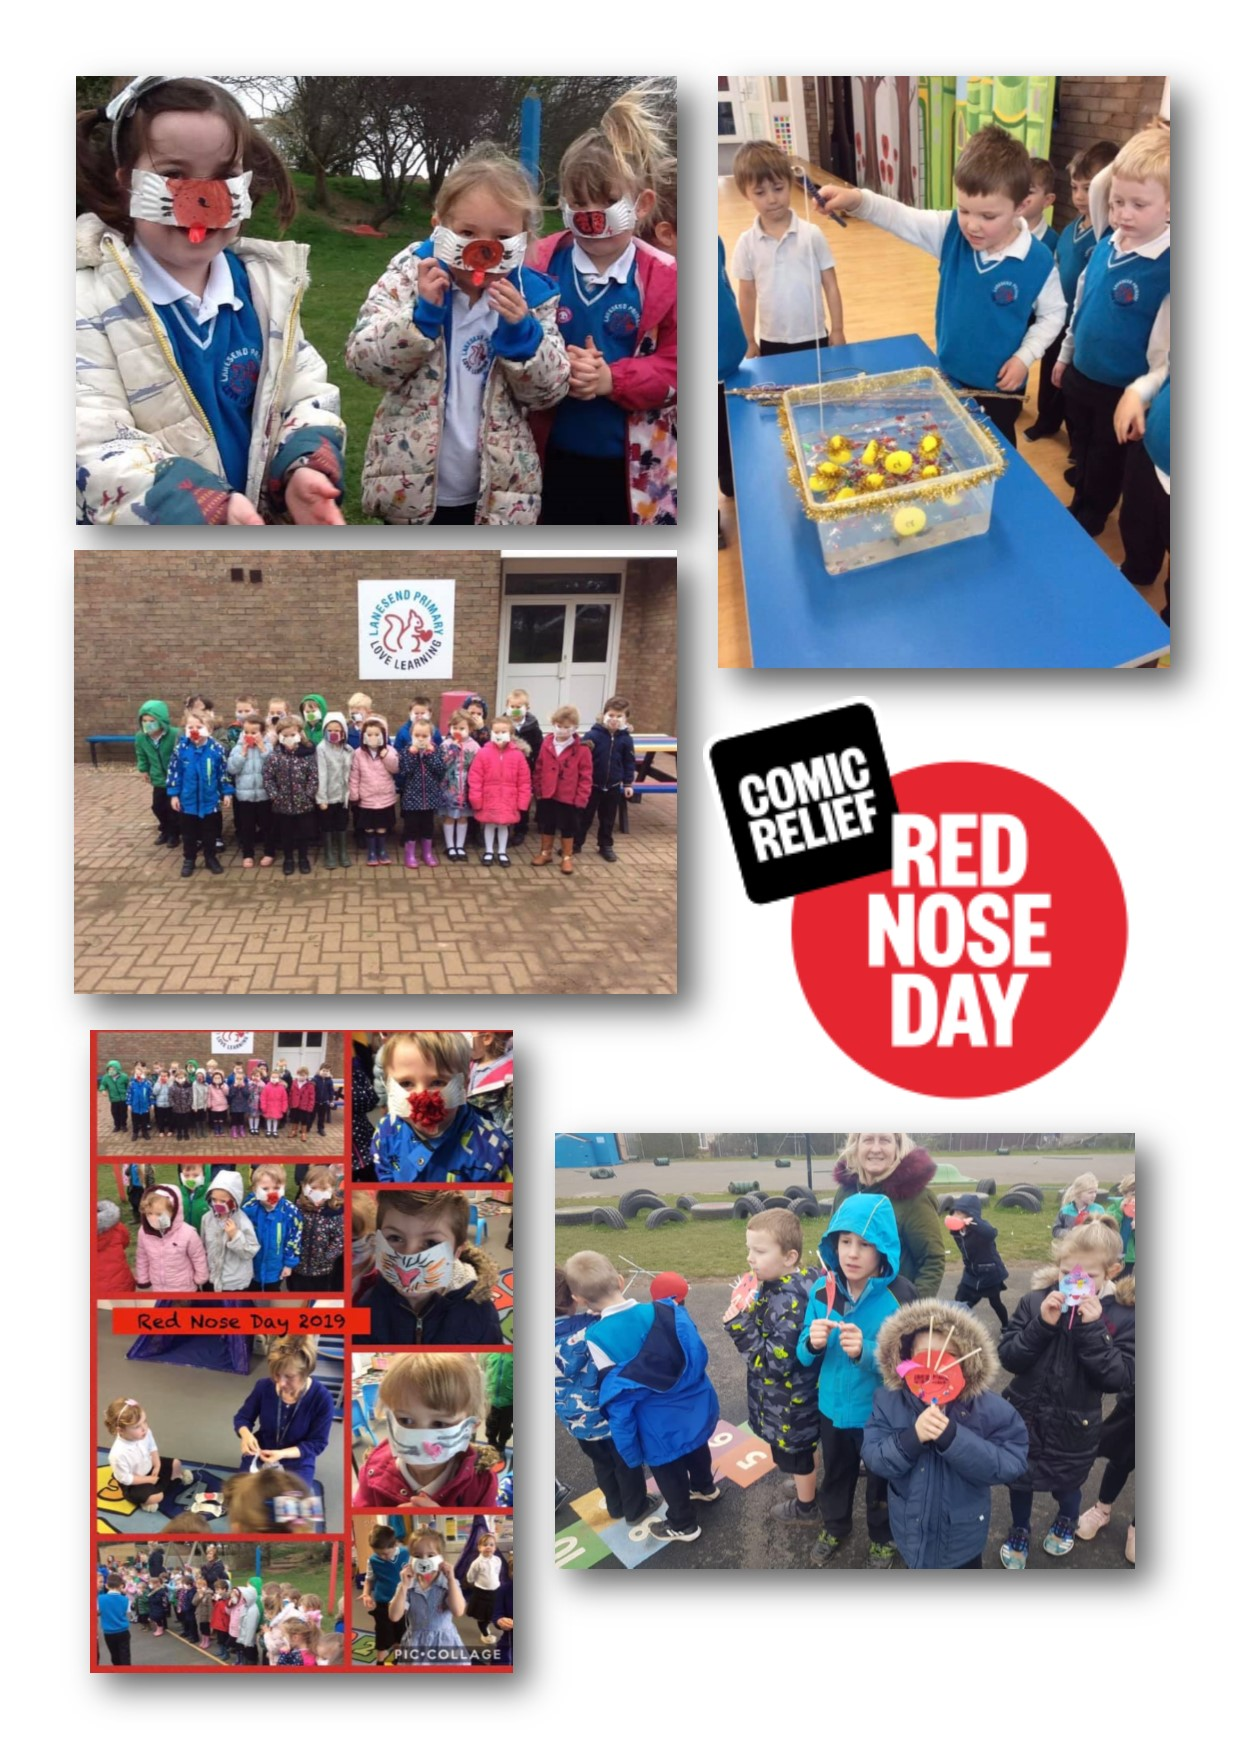 More fun from Red Nose Day!